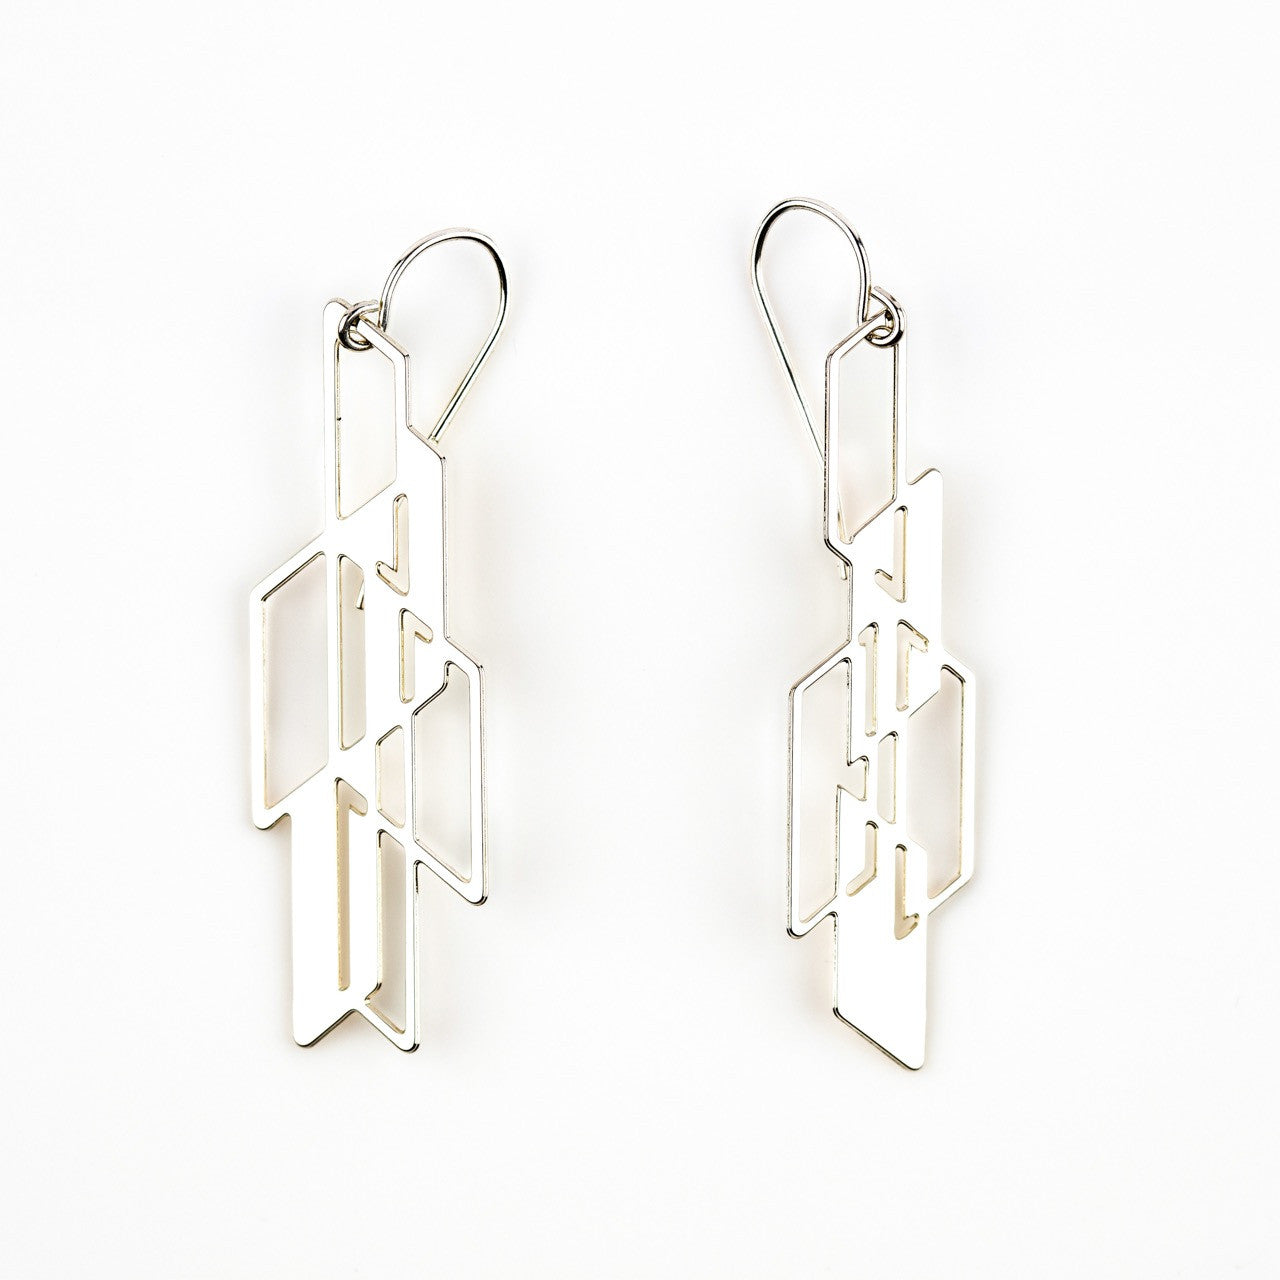 #13 earrings silver